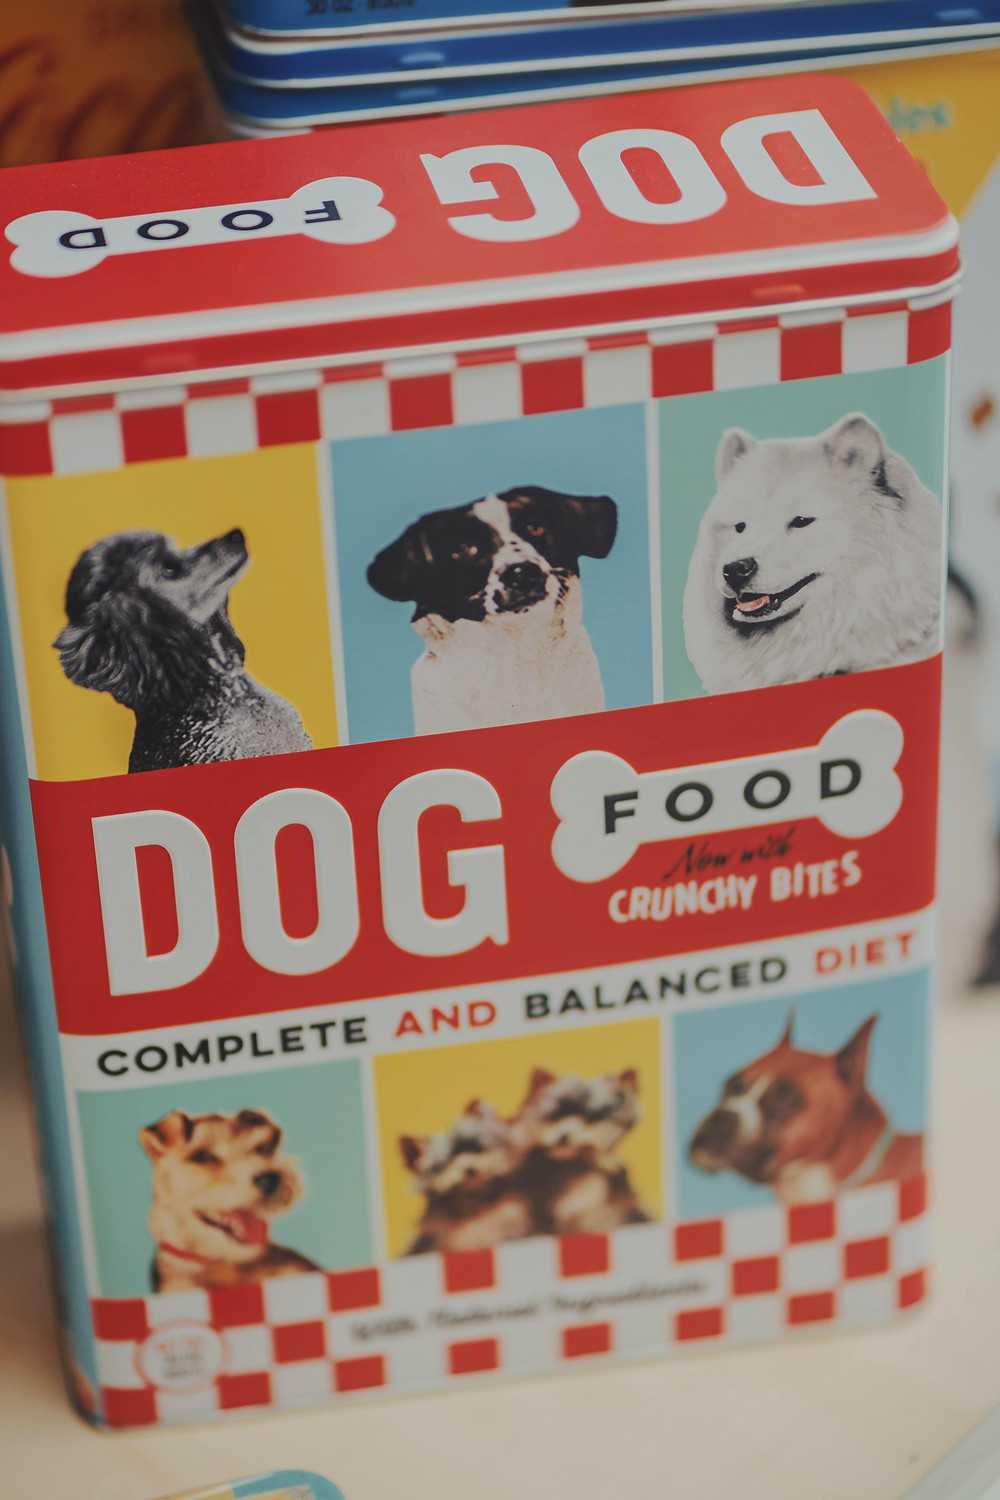 Reading food labels helps to identify good food for dogs to eat